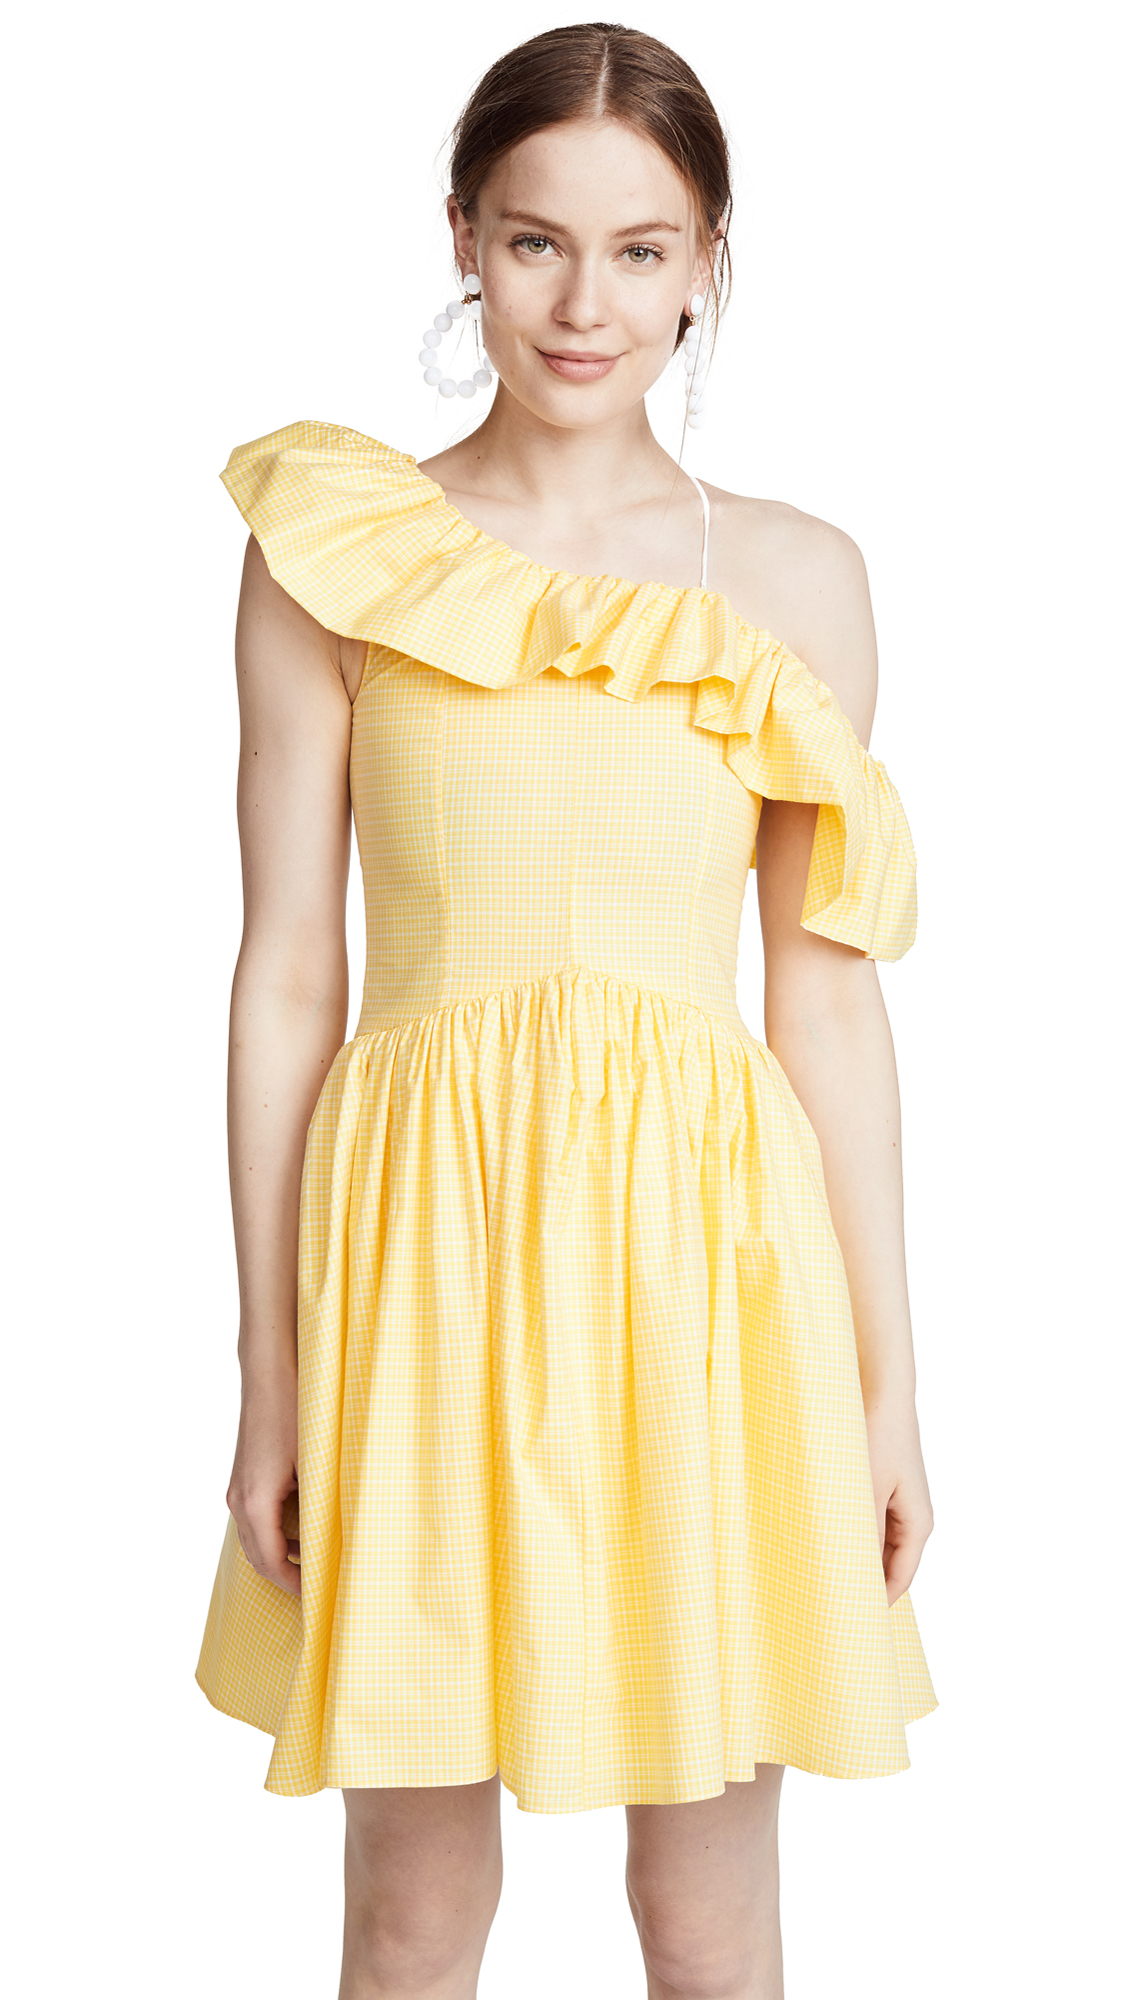 PAMPLEMOUSSE Daisy Dress in Yellow